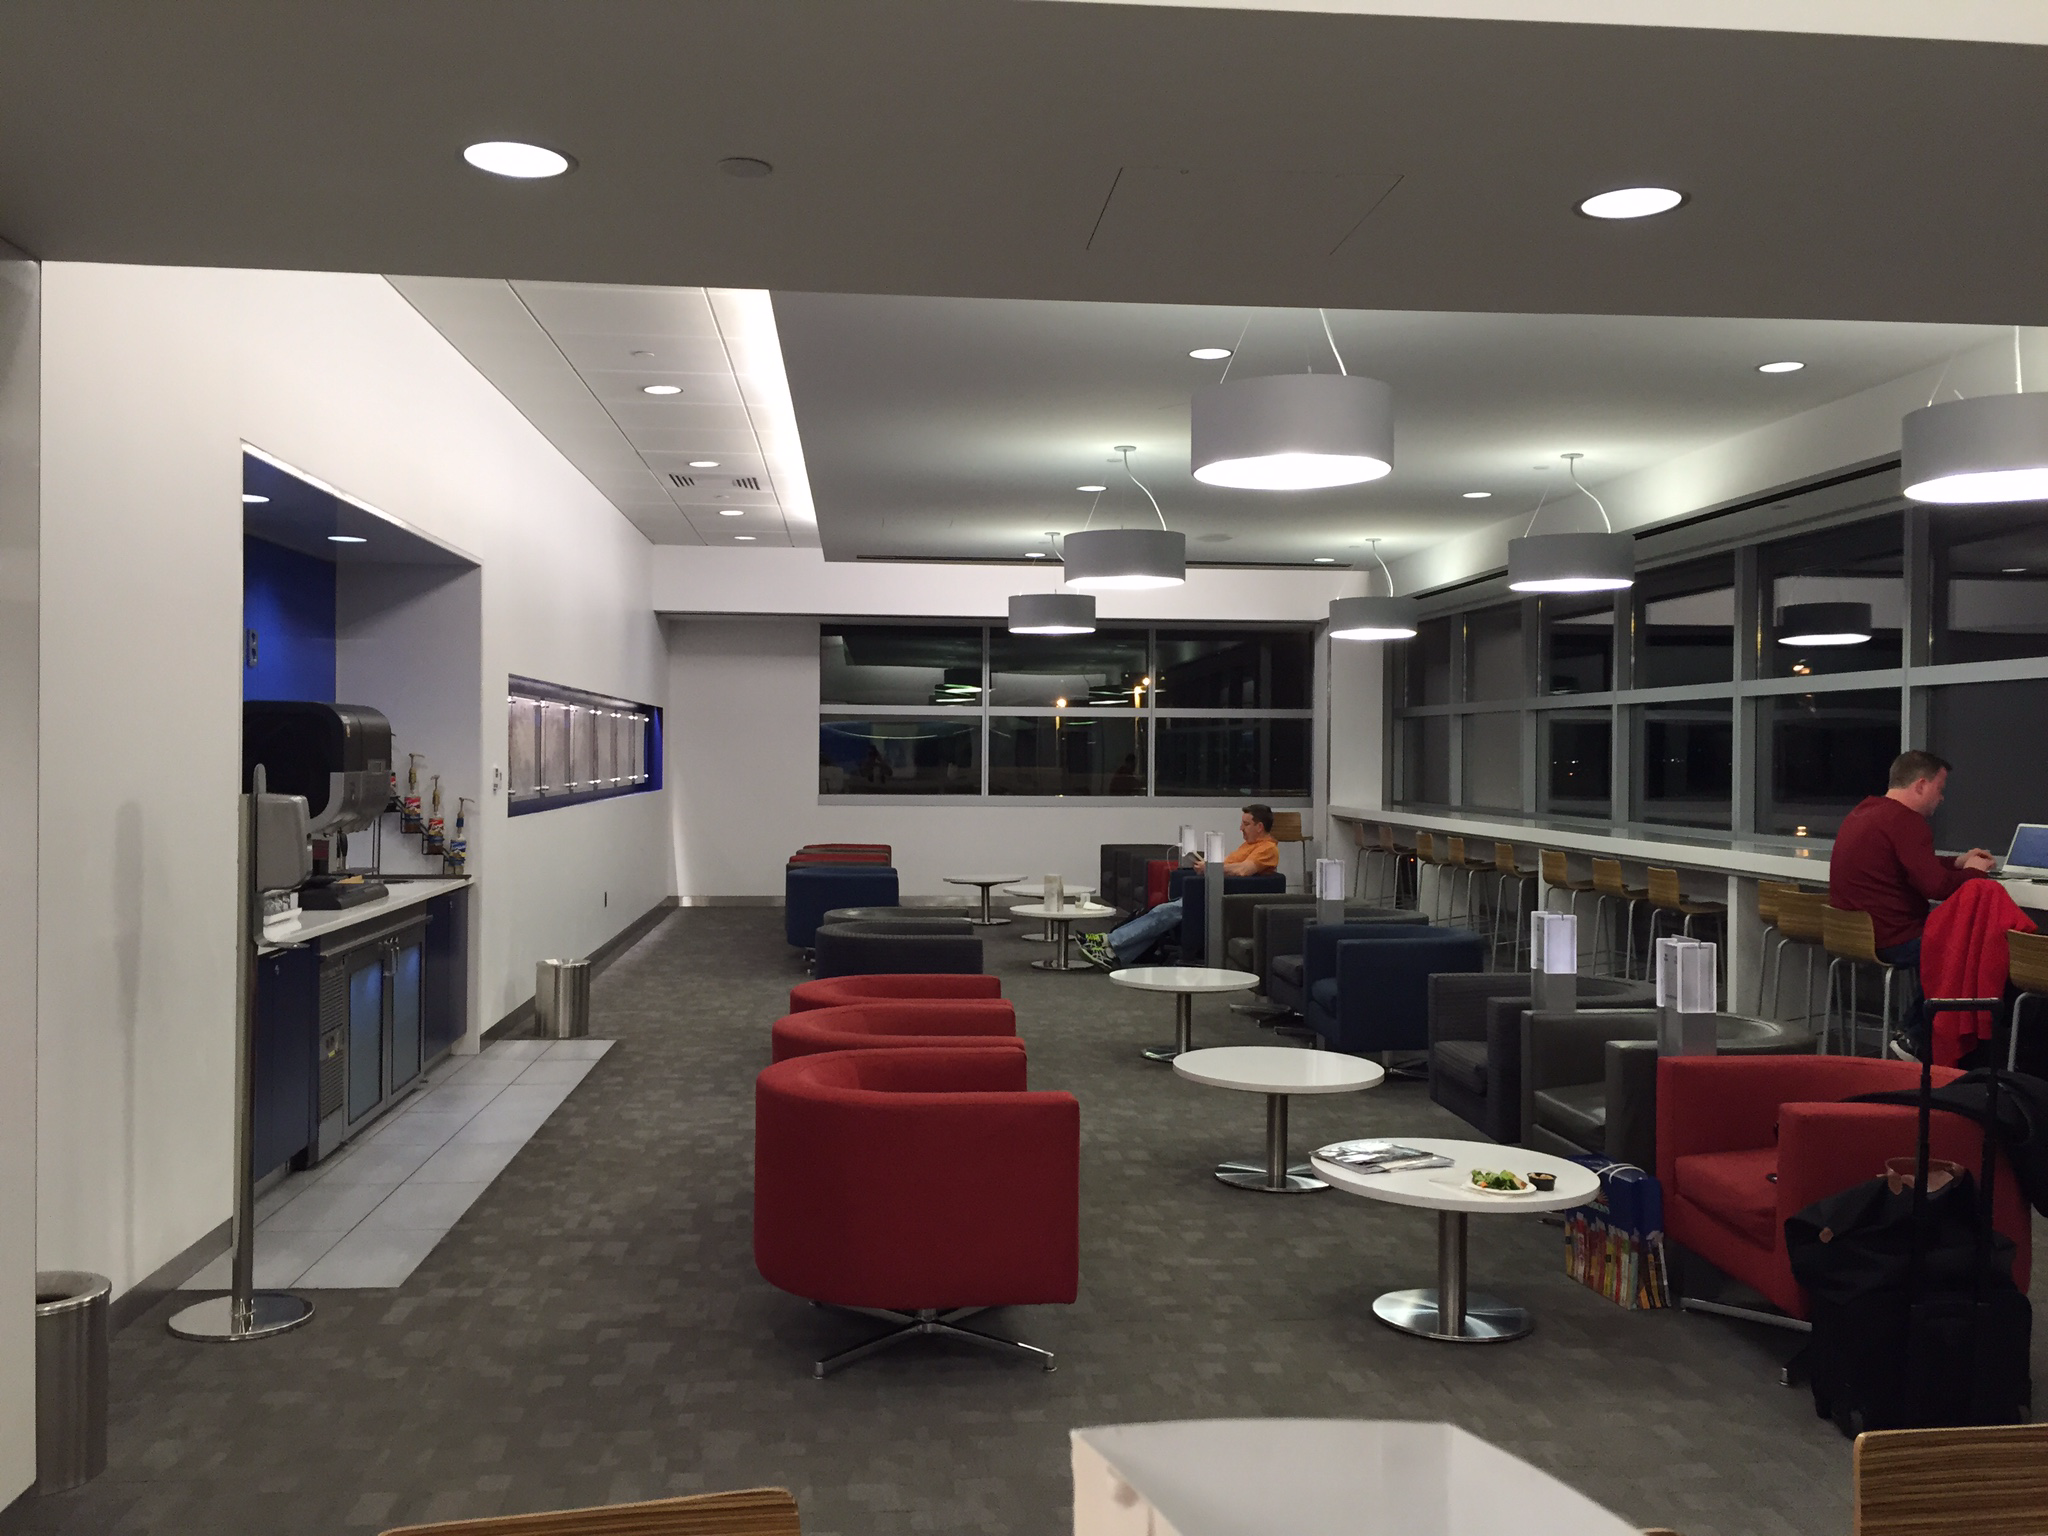 Review delta skyclub terminal 4 jfk airport one mile at for Best airport lounge program